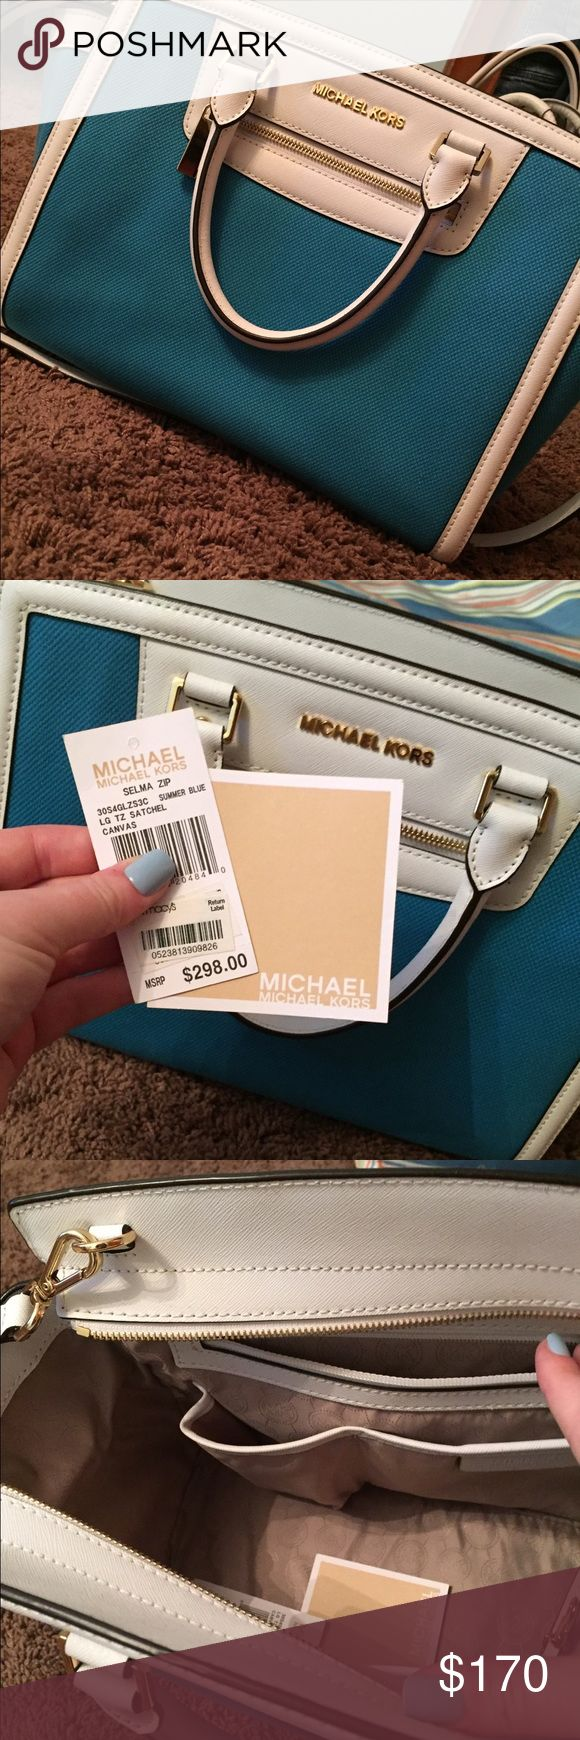 Michael Kors summer purse Beautiful blue and white purse. NEW WITH TAGS. perfect for summer! KORS Michael Kors Bags Shoulder Bags